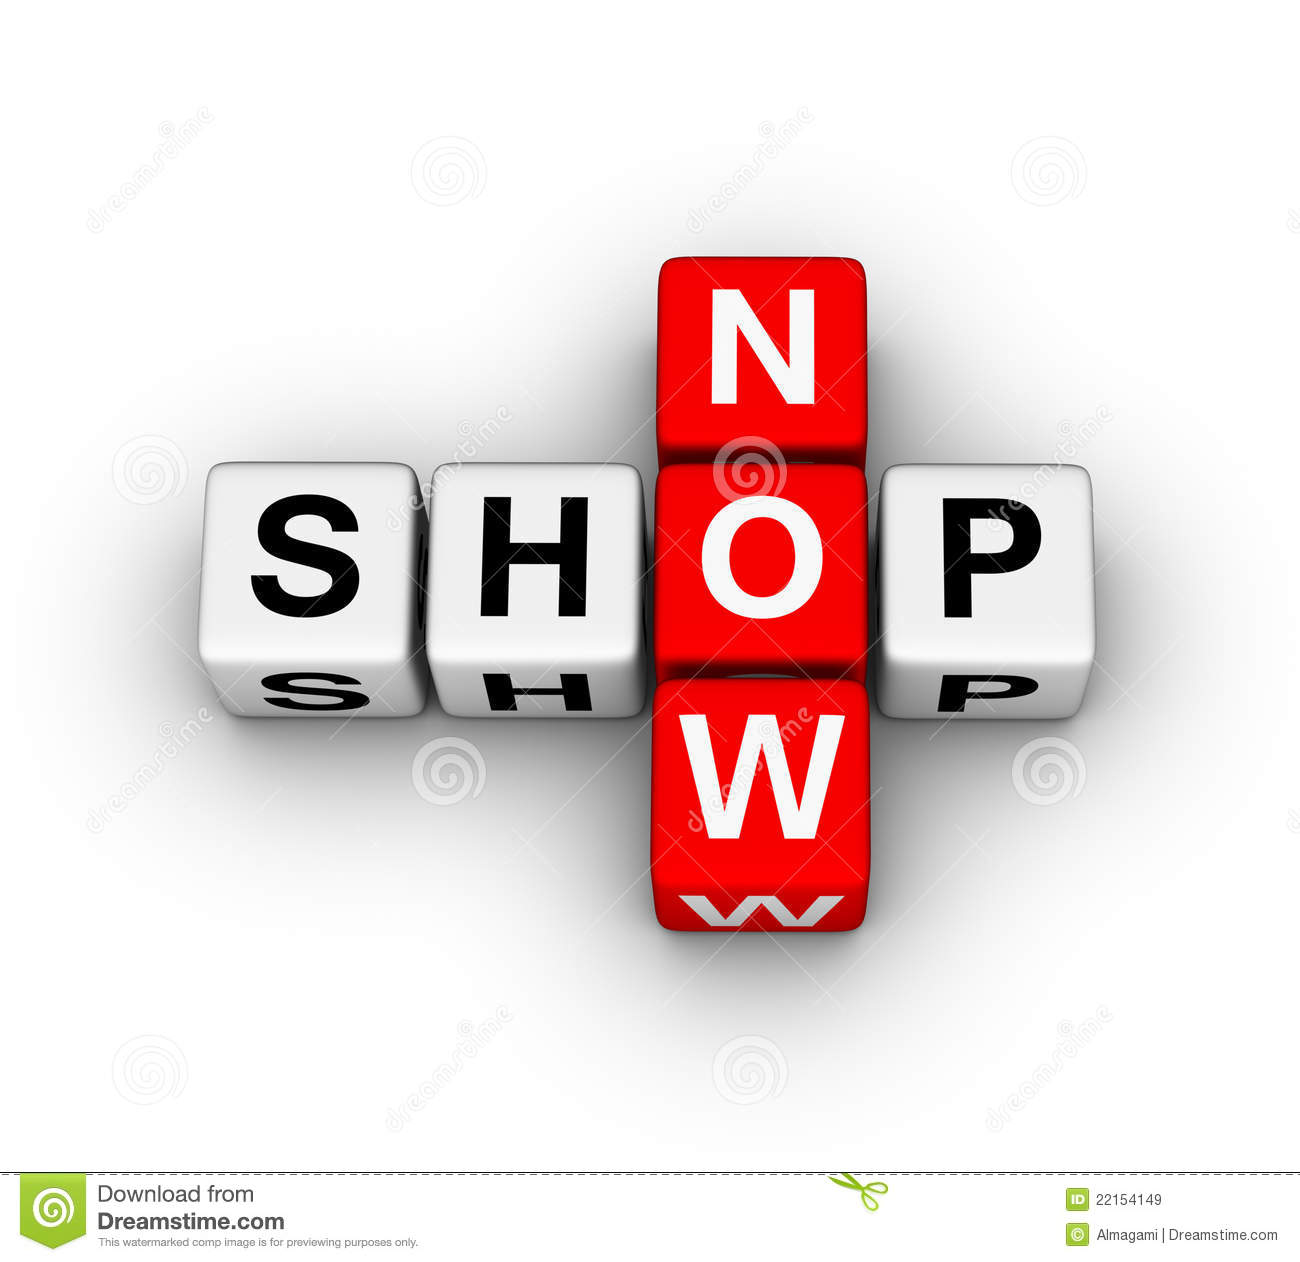 Shop Now Icon Royalty Free Stock Images - Image: 22154149: www.dreamstime.com/royalty-free-stock-images-shop-now-icon...